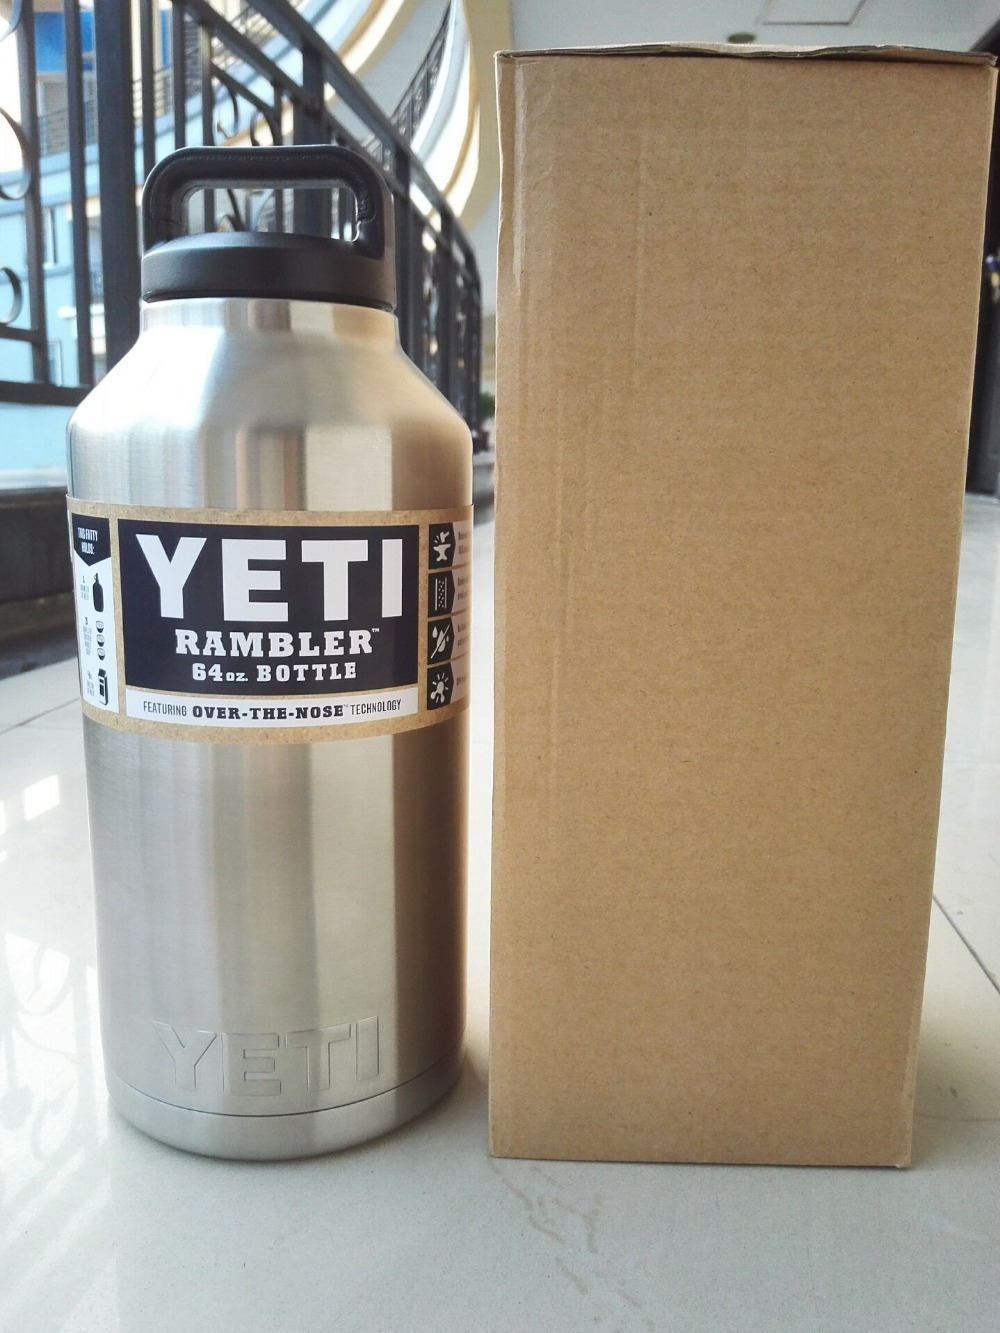 64oz <font><b>YETI</b></font> <font><b>Rambler</b></font> 304 Stainless Steel <font><b>Cups</b></font> Large Capacity Cooler 64 oz <font><b>yeti</b></font> <font><b>Rambler</b></font> <font><b>Tumbler</b></font> <font><b>Cup</b></font> <font><b>Vehicle</b></font> Beer Mug Double Bilayer